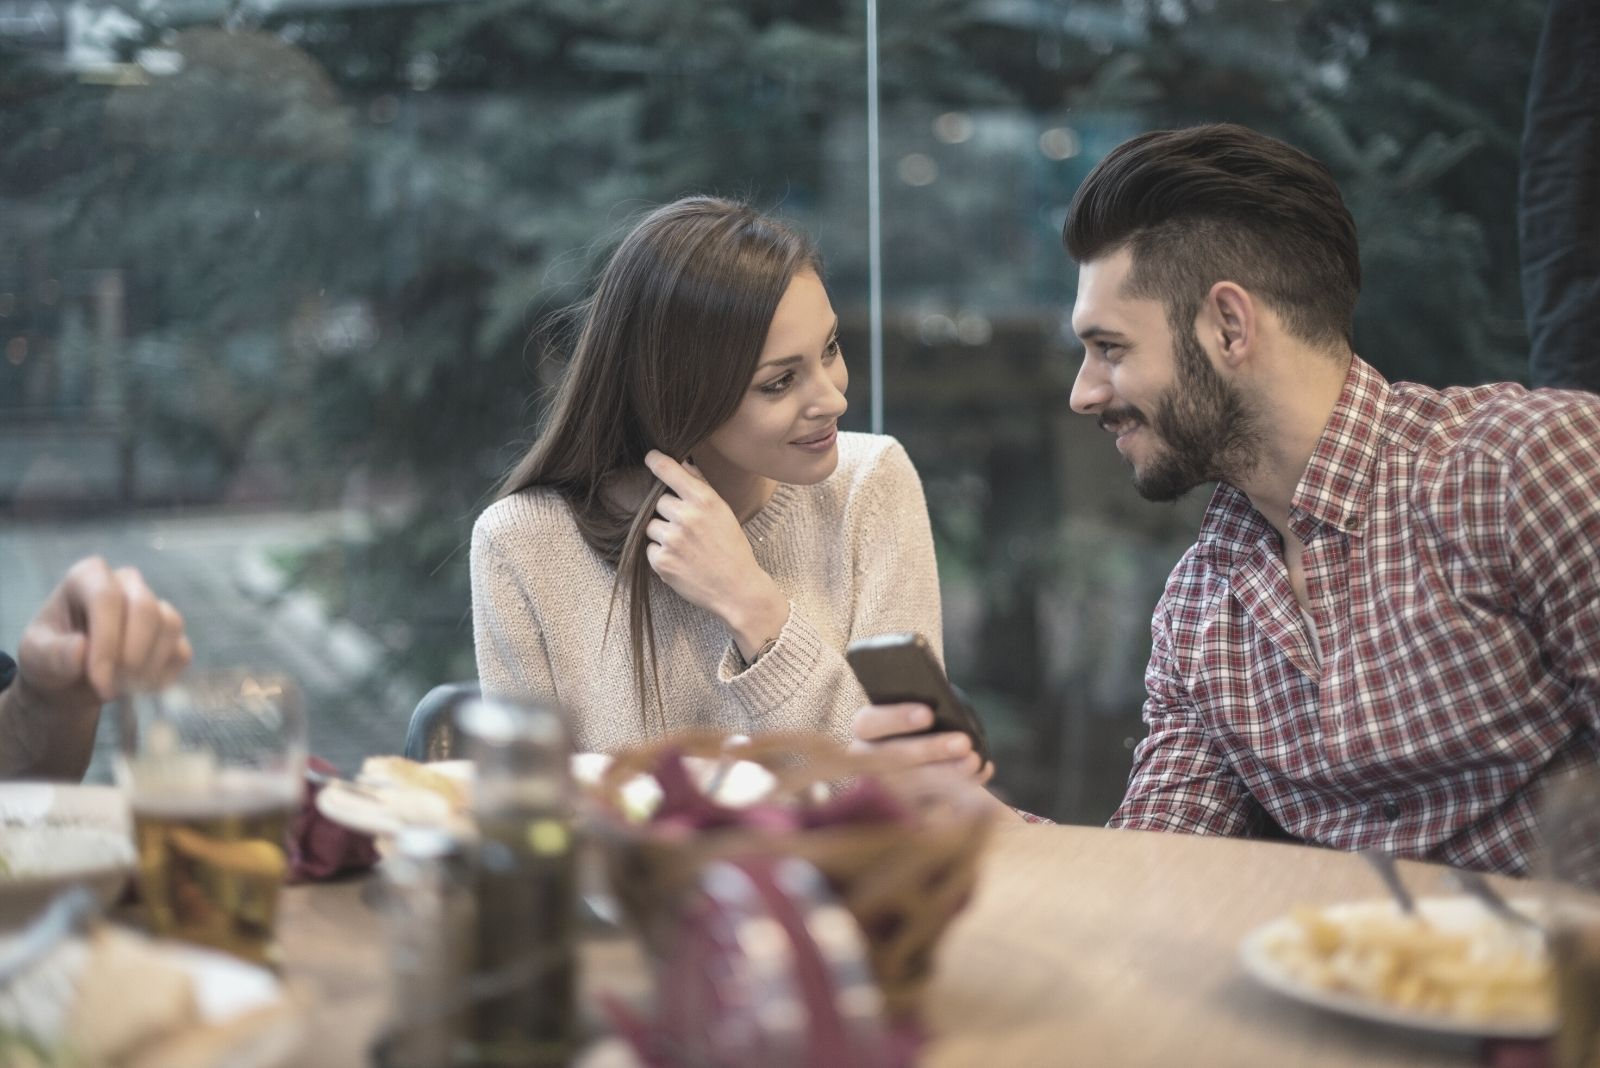 man holding a phone while sitting next to a woman in the restaurant